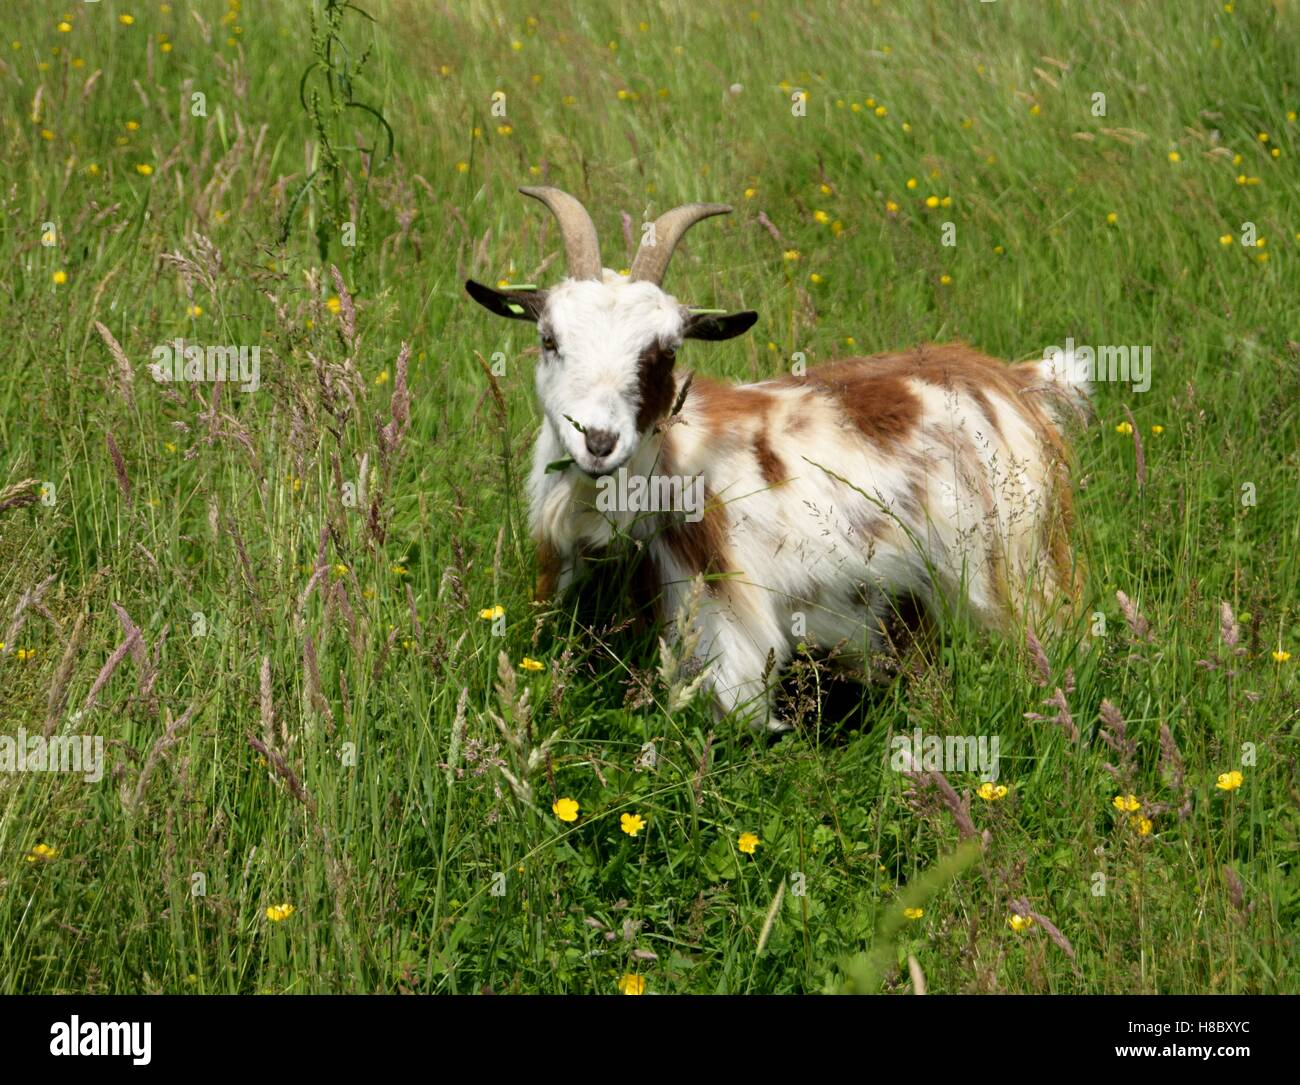 Female goat in our wild flower meadow. - Stock Image